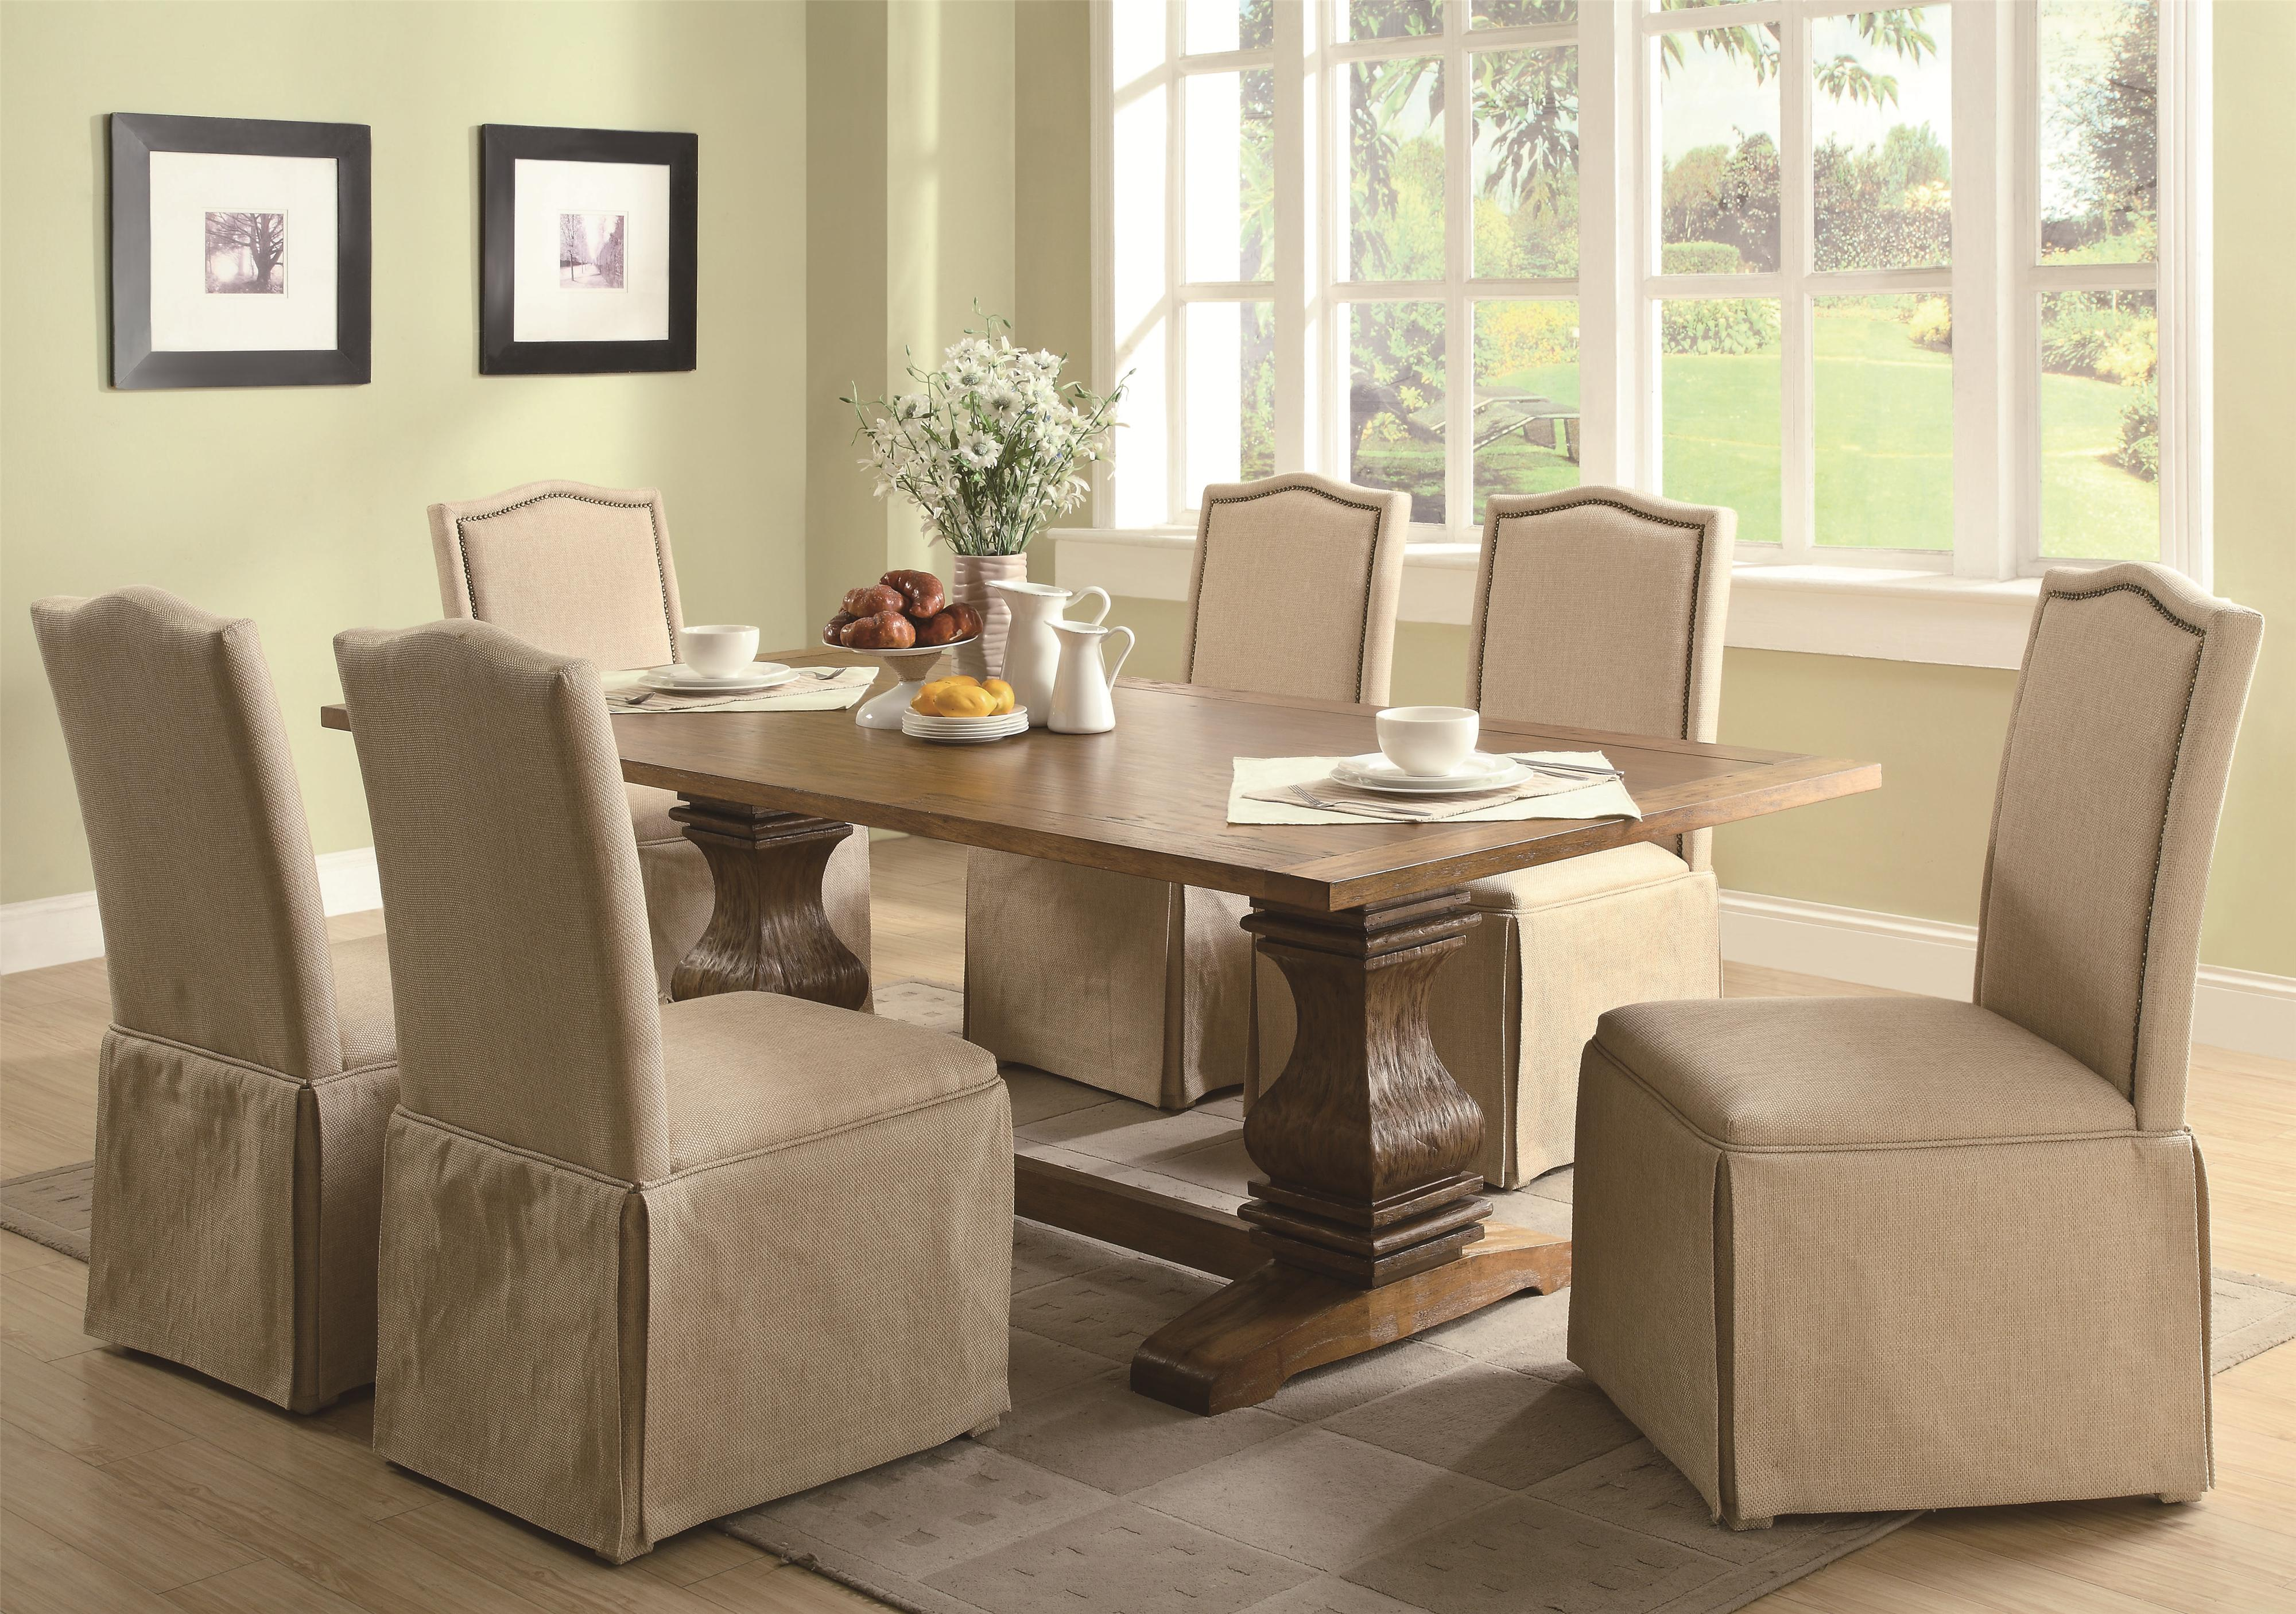 Coaster Parkins 7 Piece Dining Table and Chair Set - Item Number: 103711+6x713